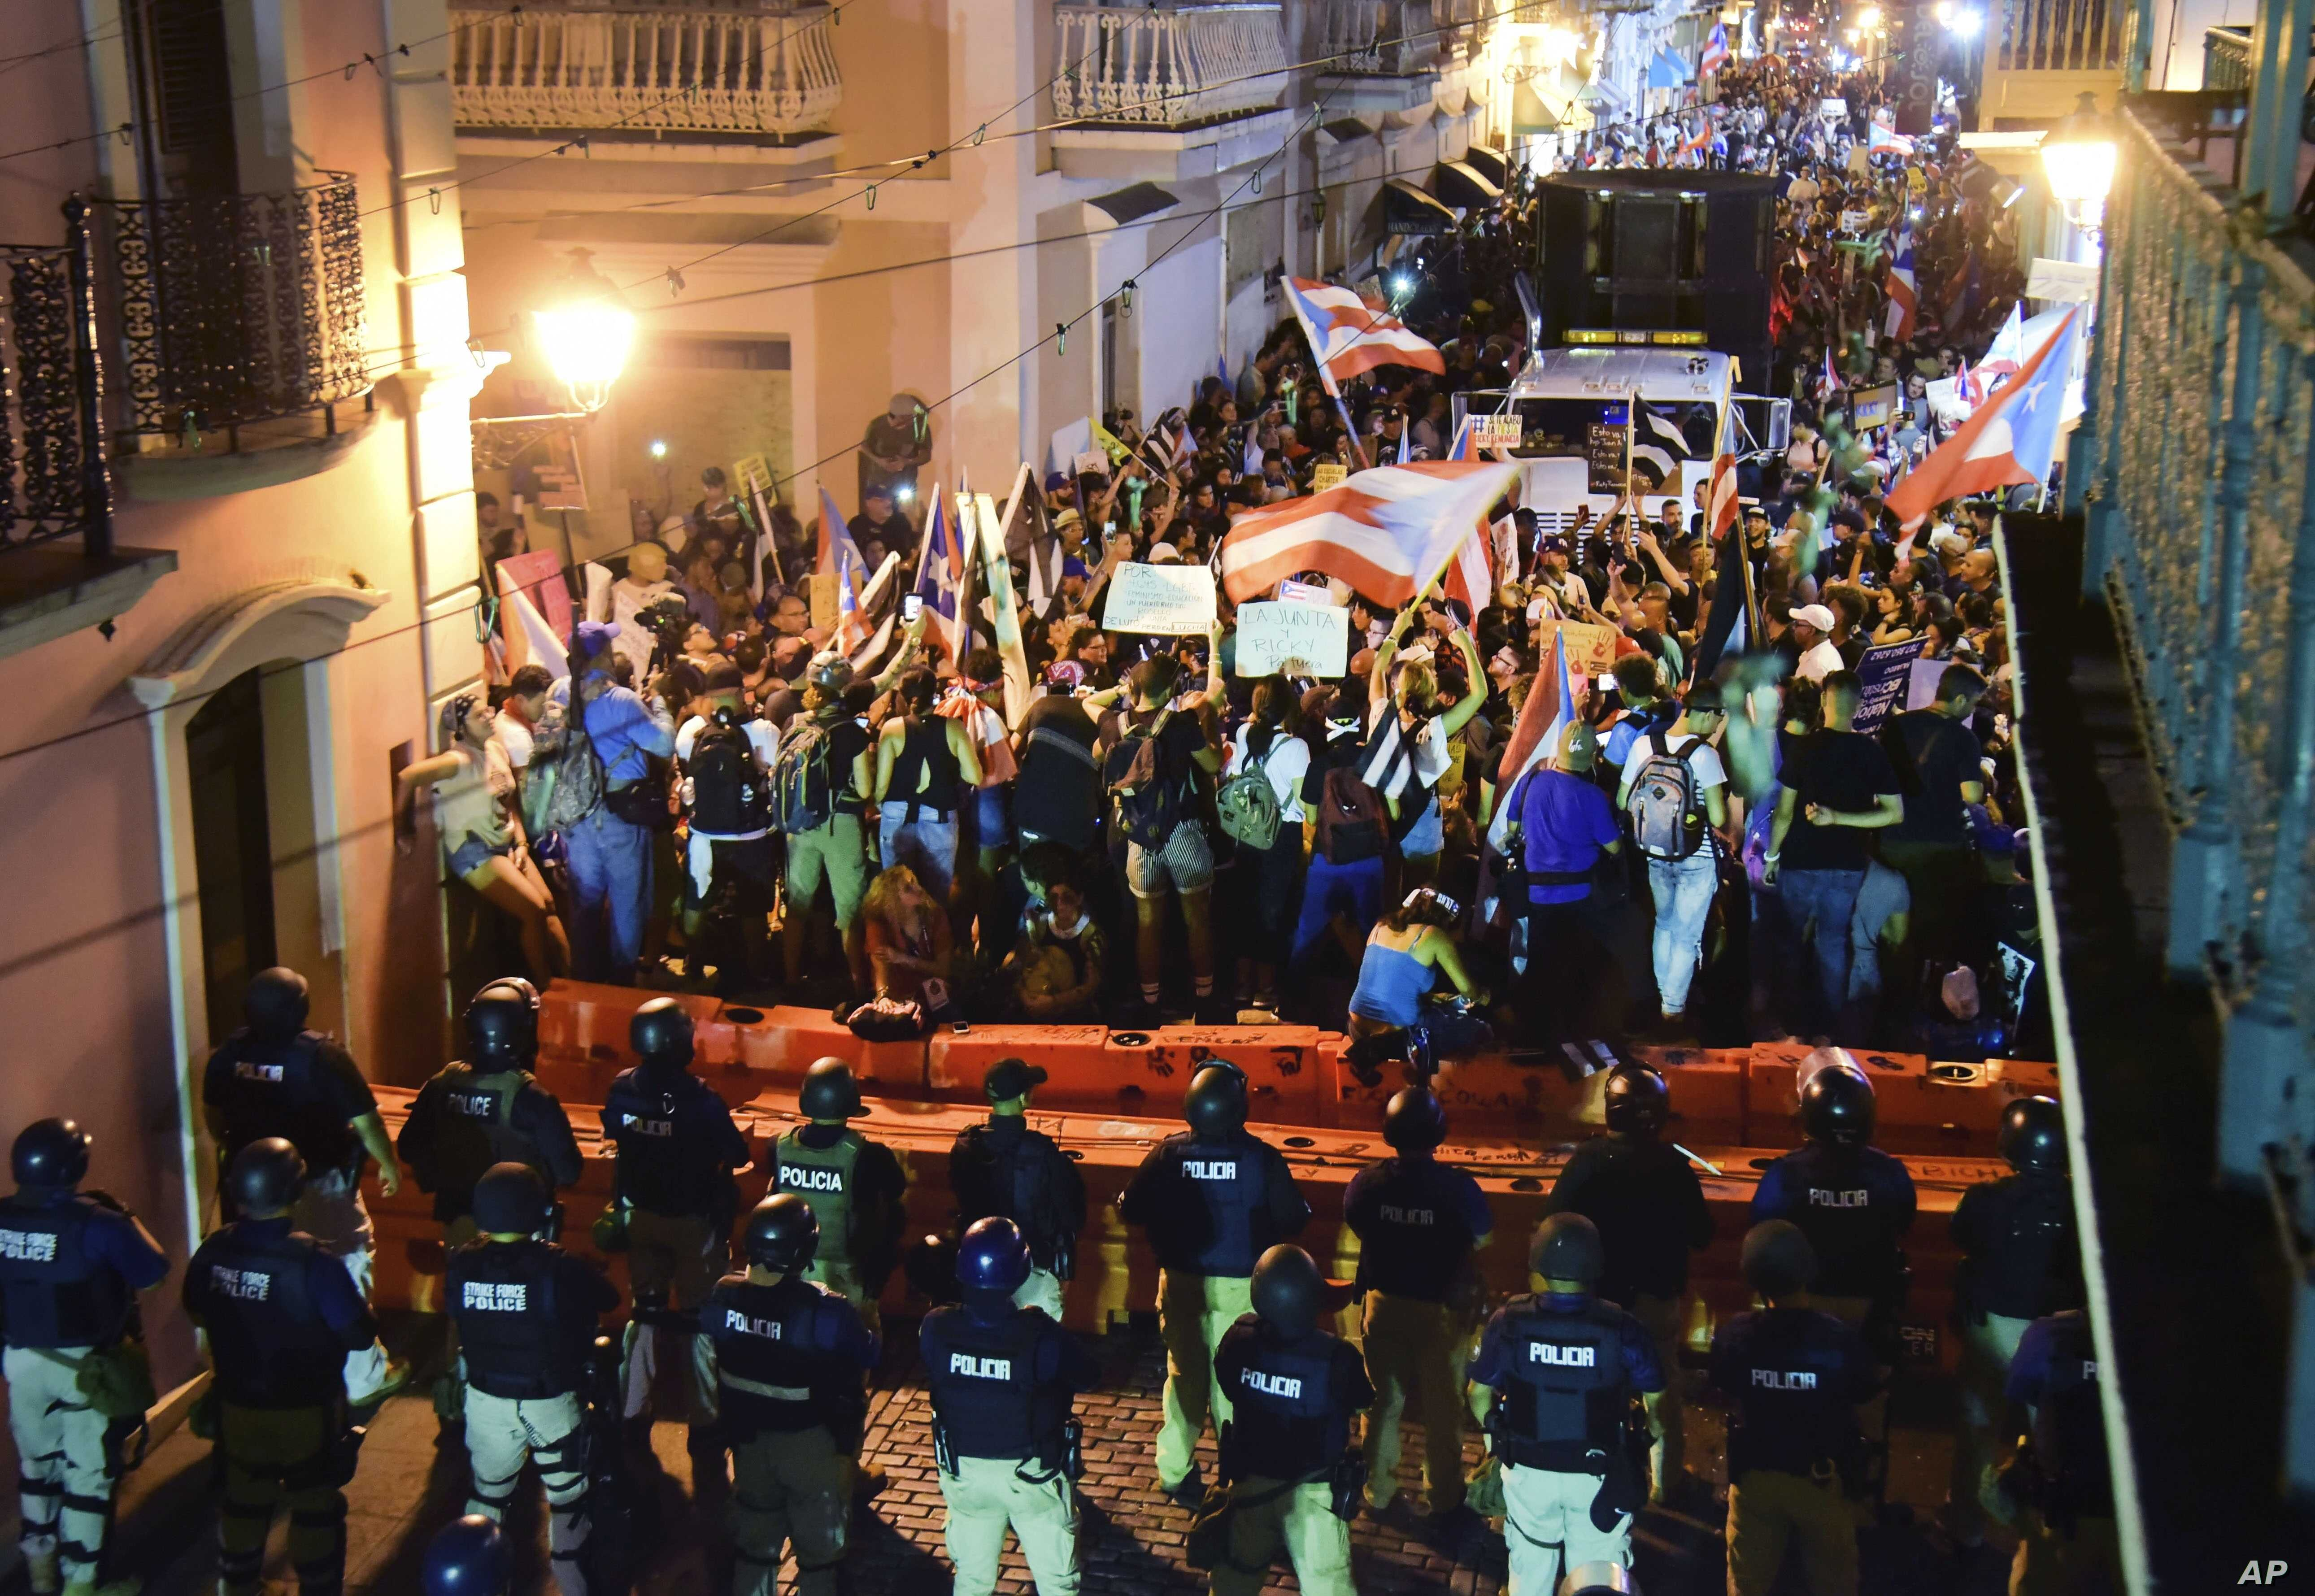 Demonstrators protest against governor Ricardo Rossello, in San Juan, Puerto Rico,  July 19, 2019. Protesters are demanding Rossello step down for his involvement in a private chat in which he used profanities.